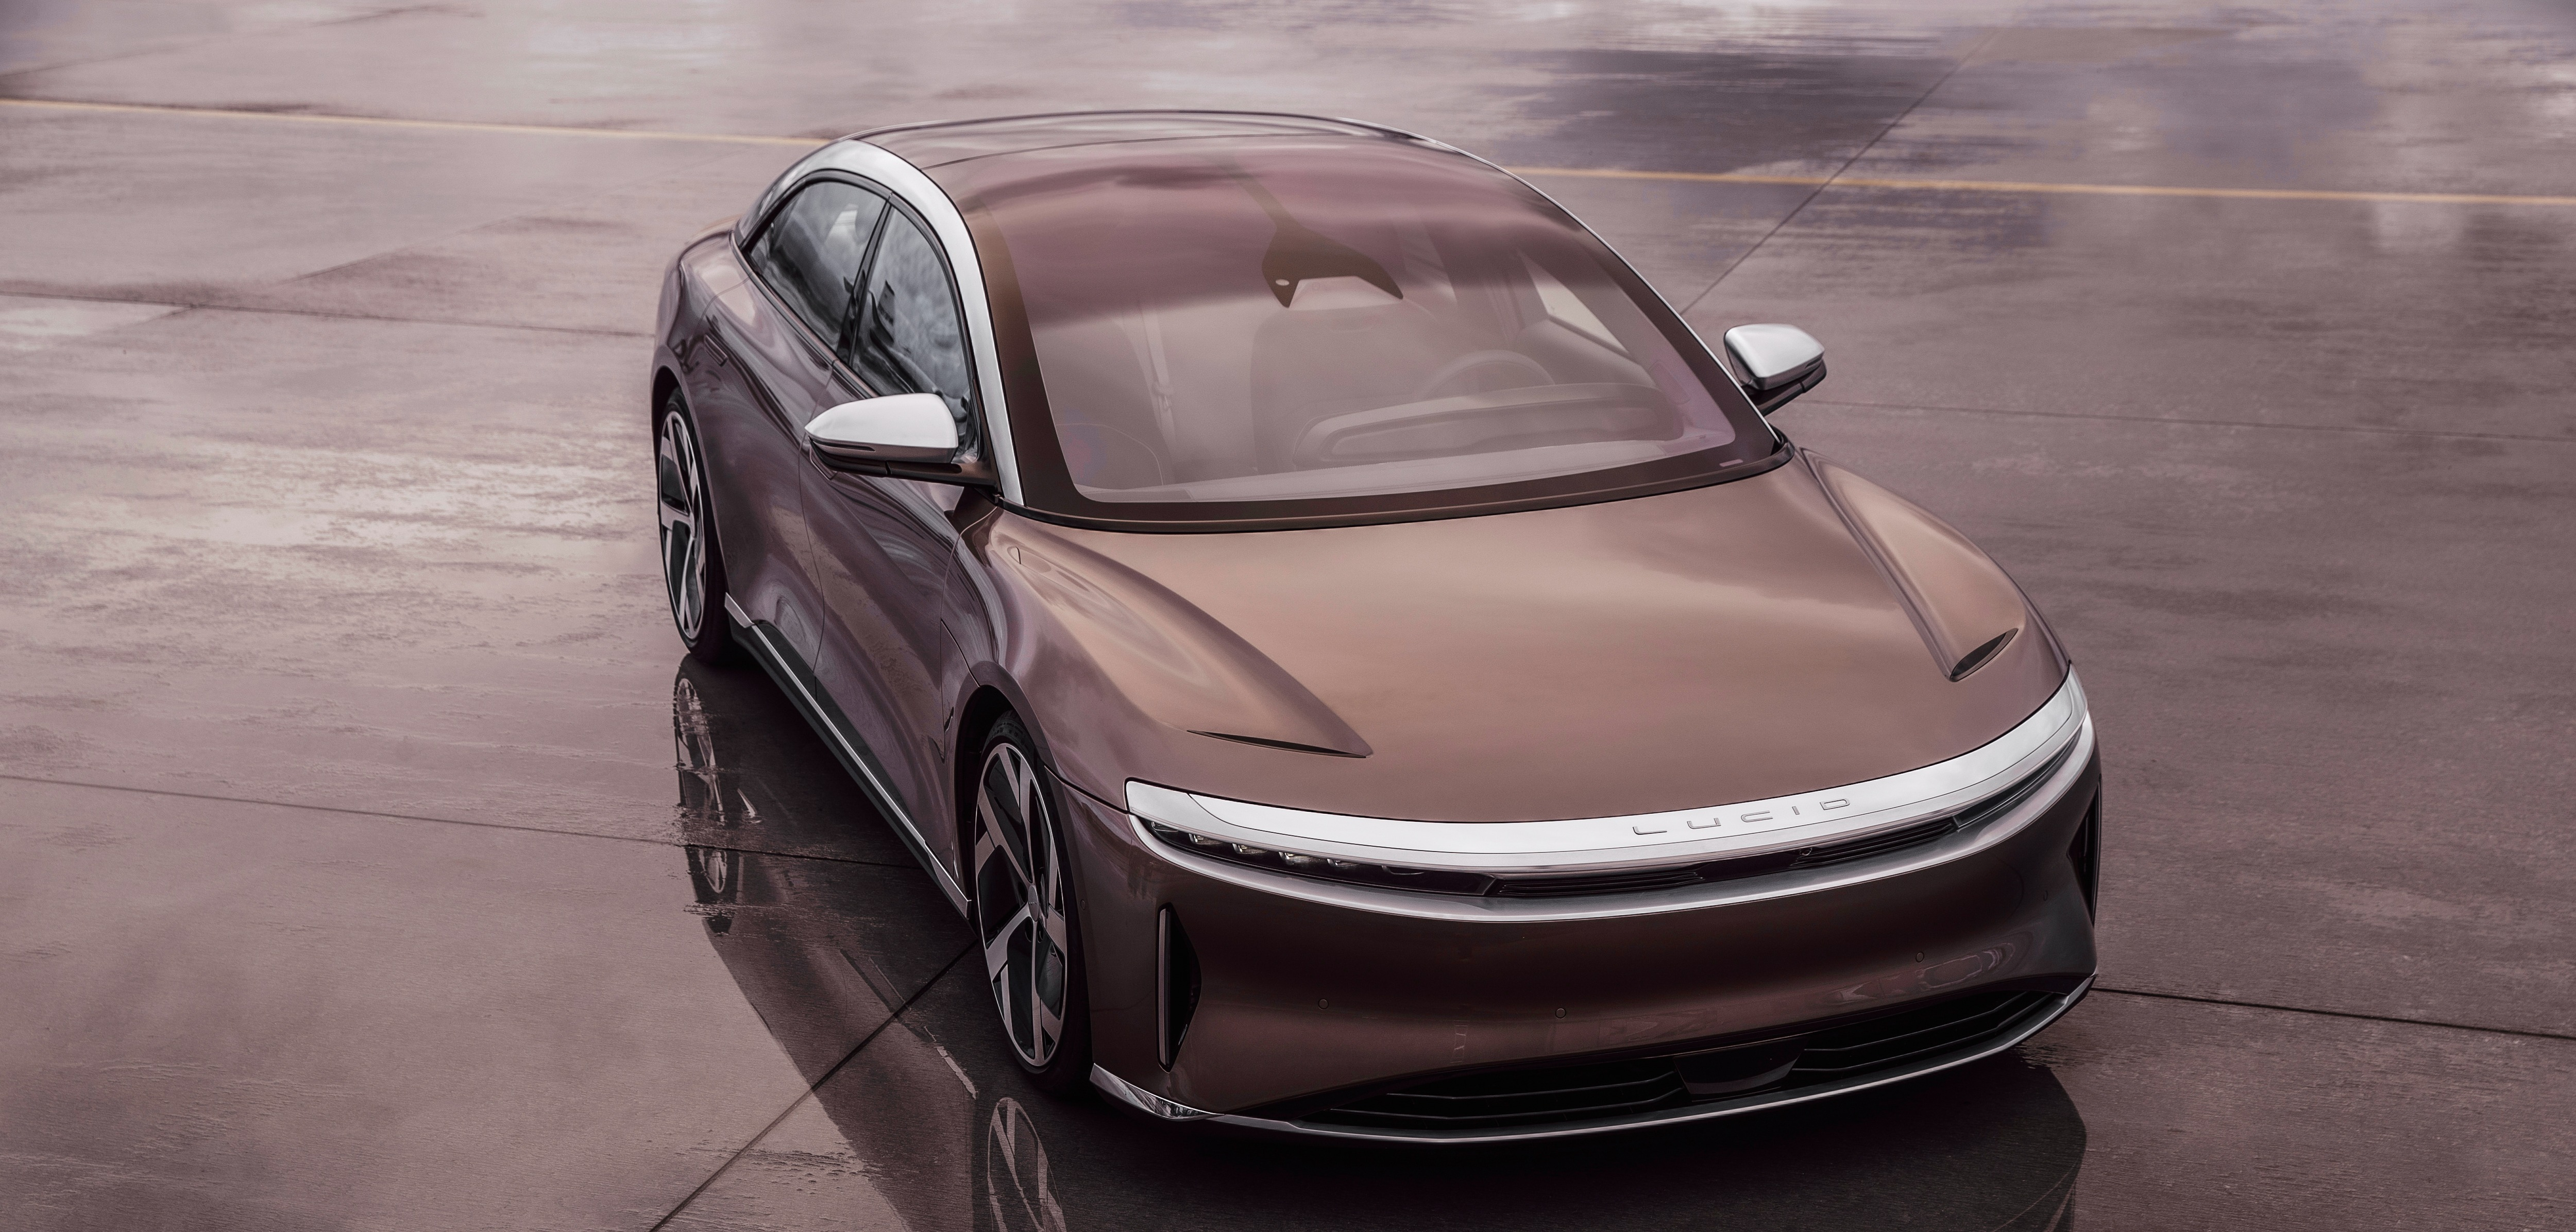 Lucid Air launched: Specs, price, facts and figures revealed - Electric &  Hybrid Vehicle Technology International